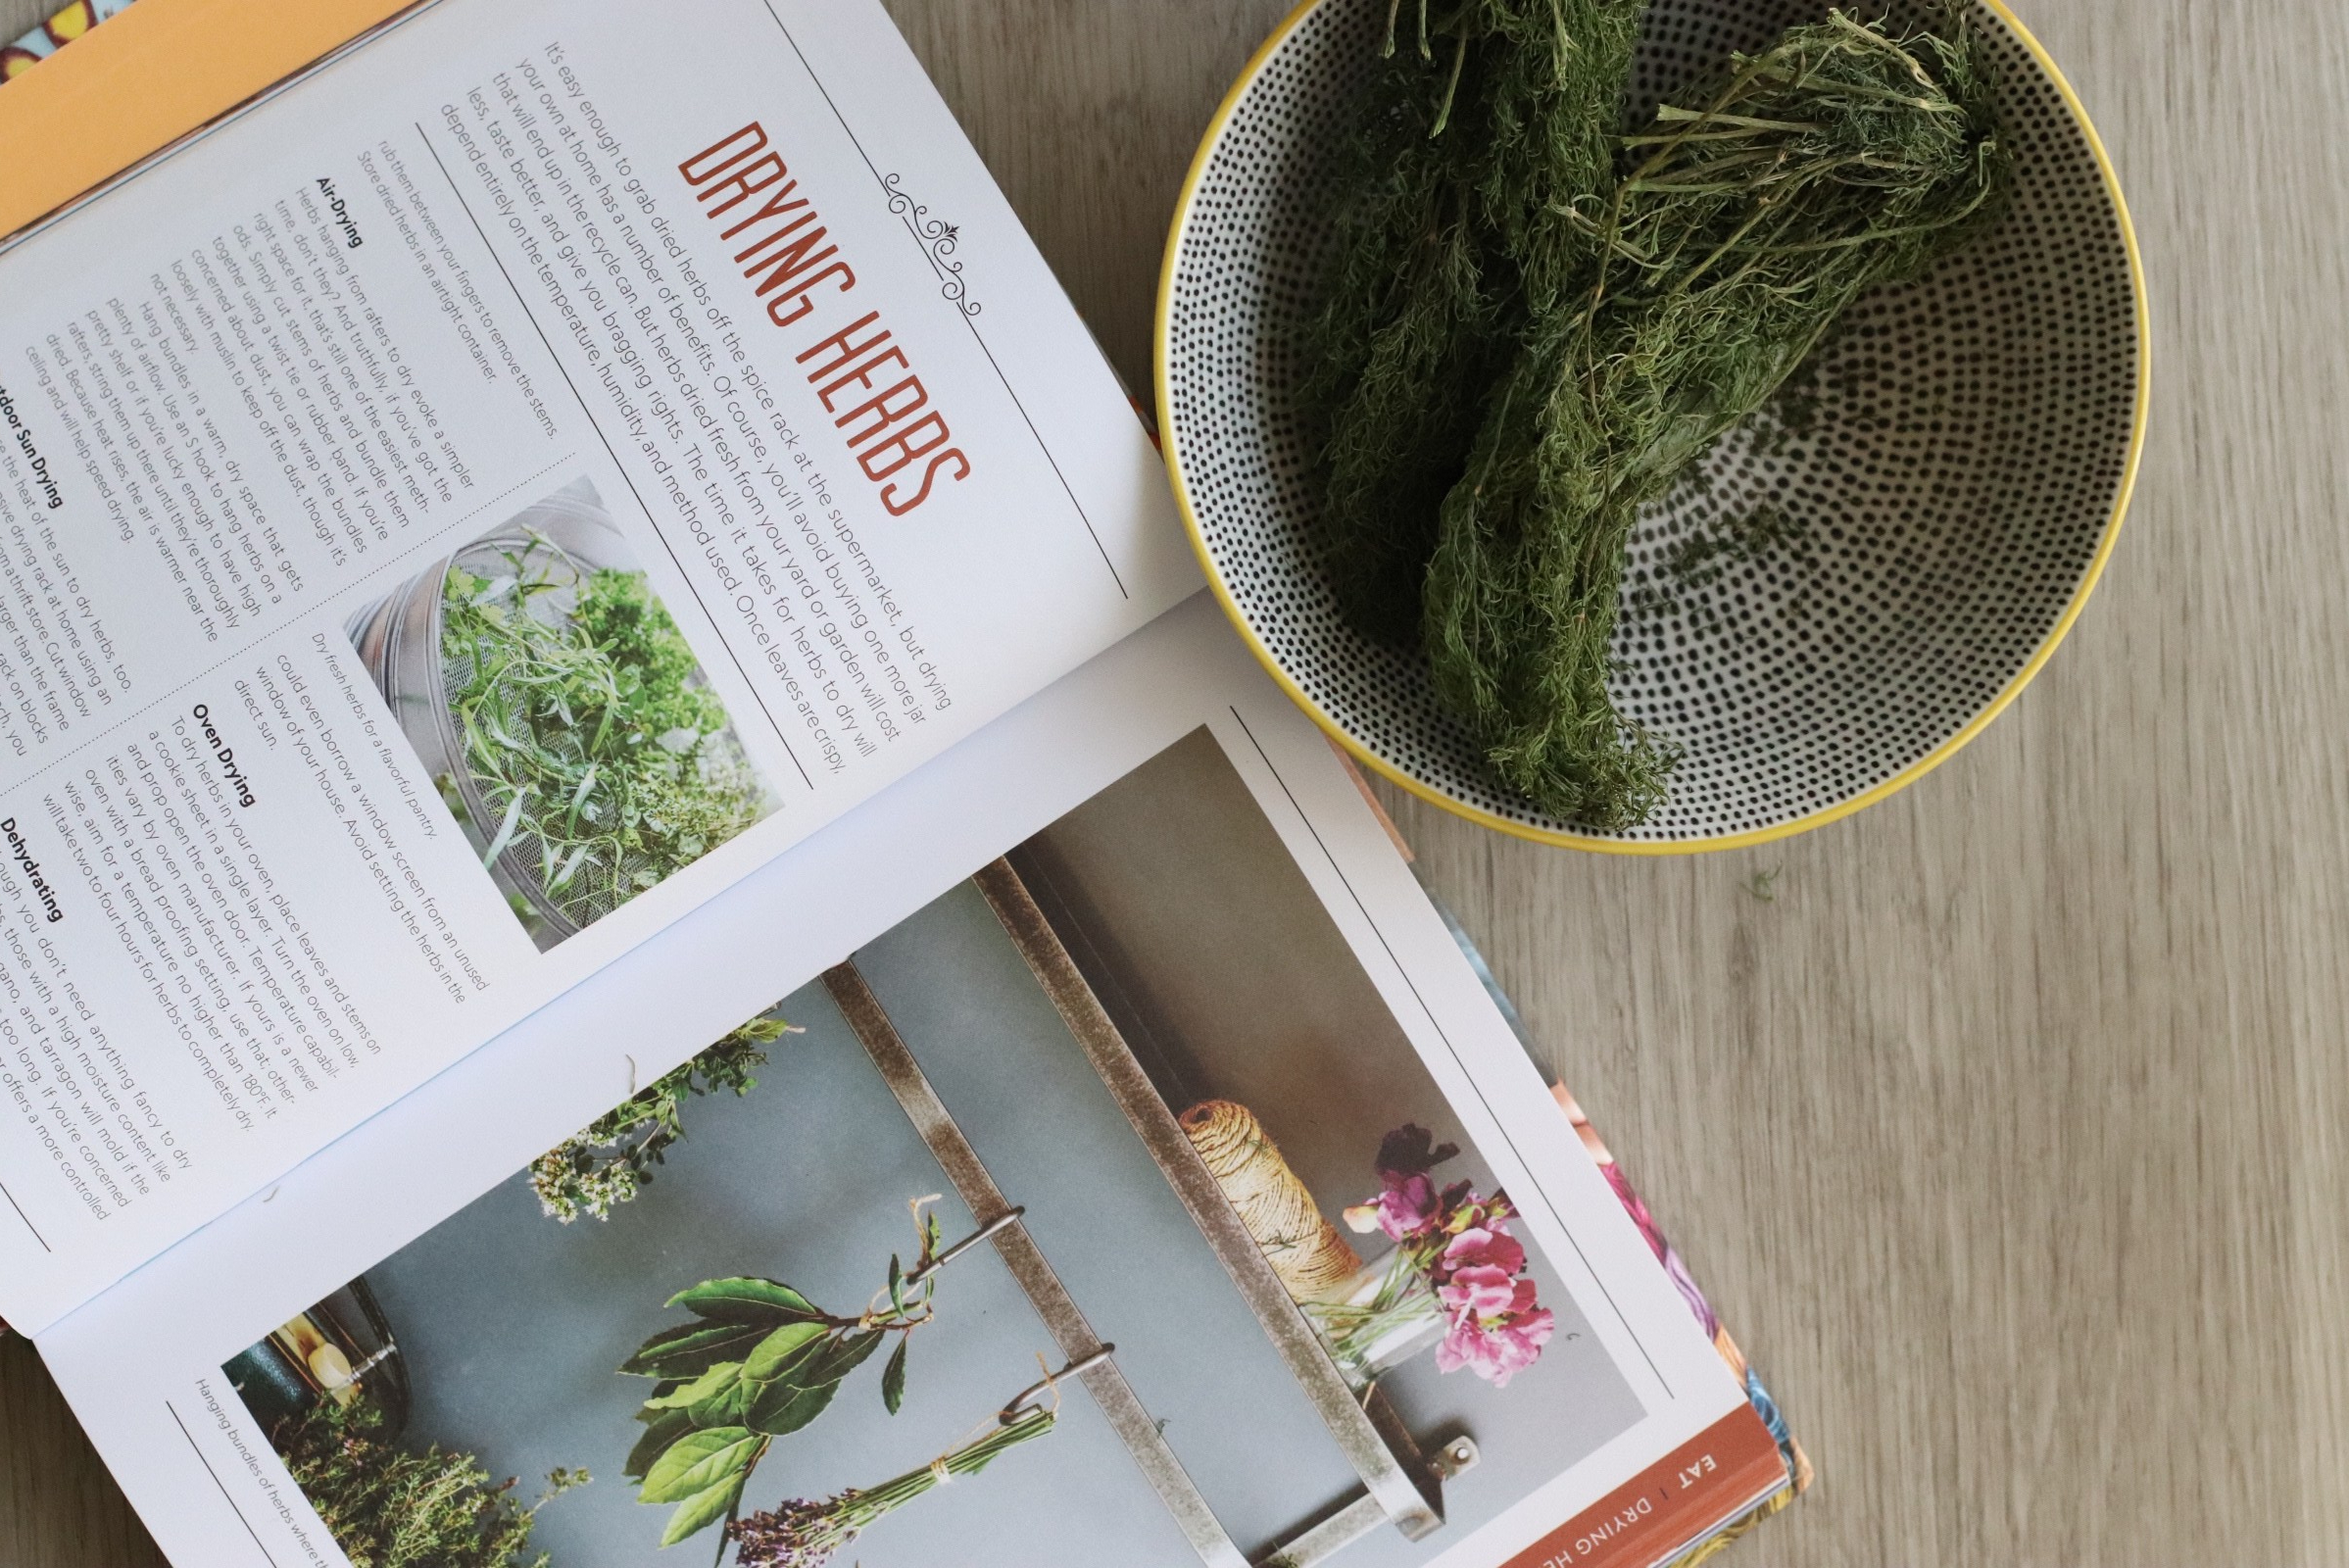 Drying Herbs Attainable Sustainable Sustainability Guide